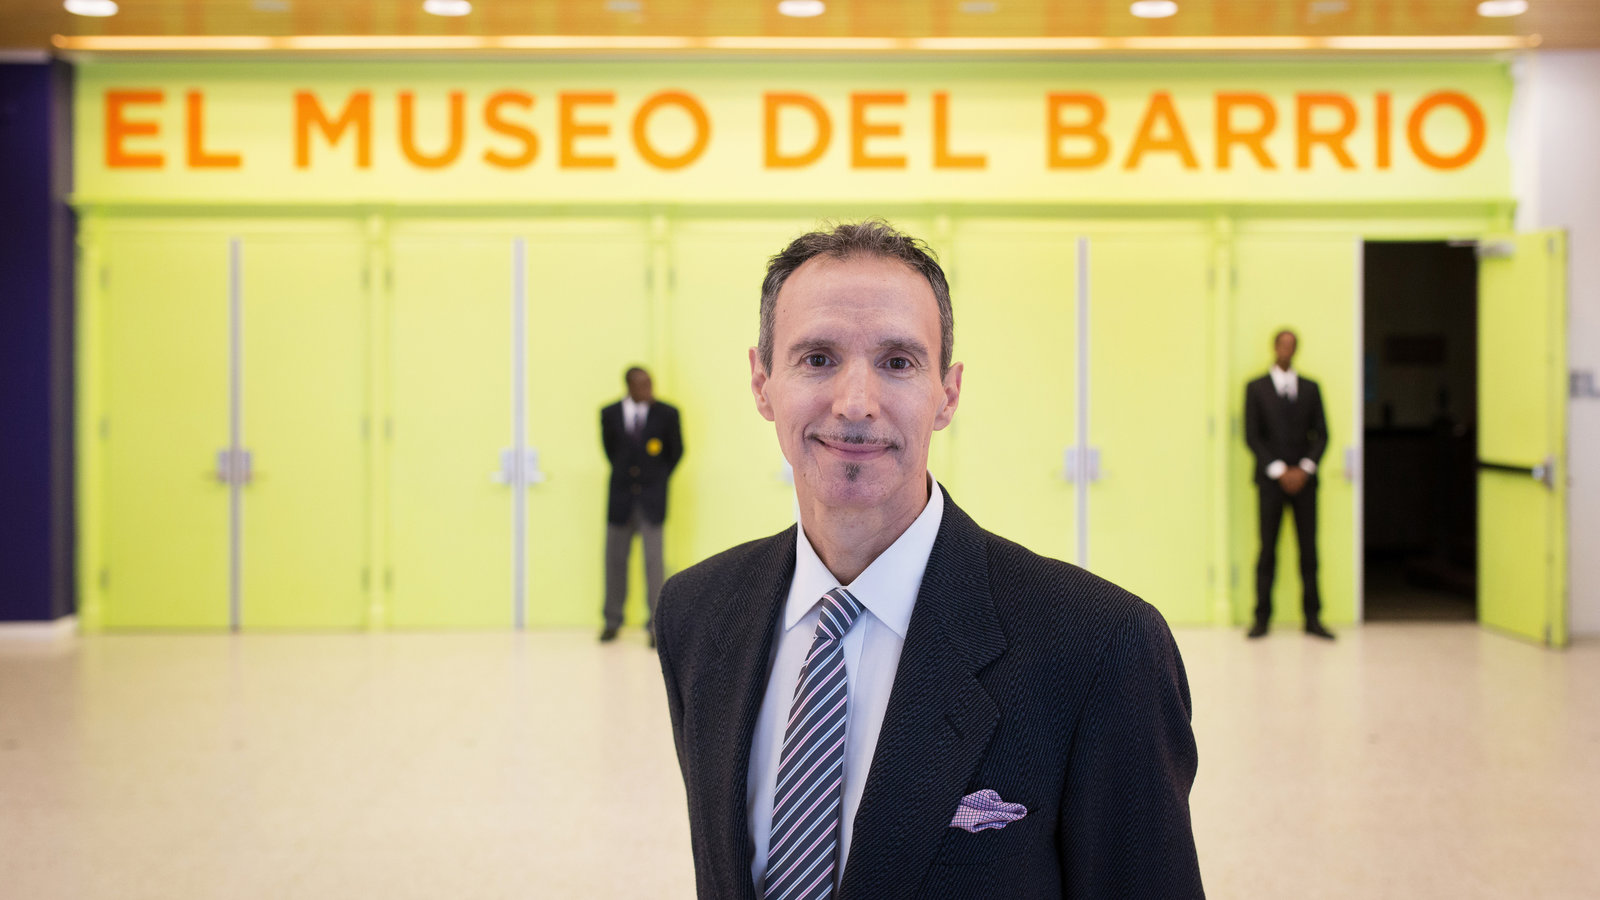 El Museo Del Barrio Art Executive Director Is Leaving El Museo Del Barrio The